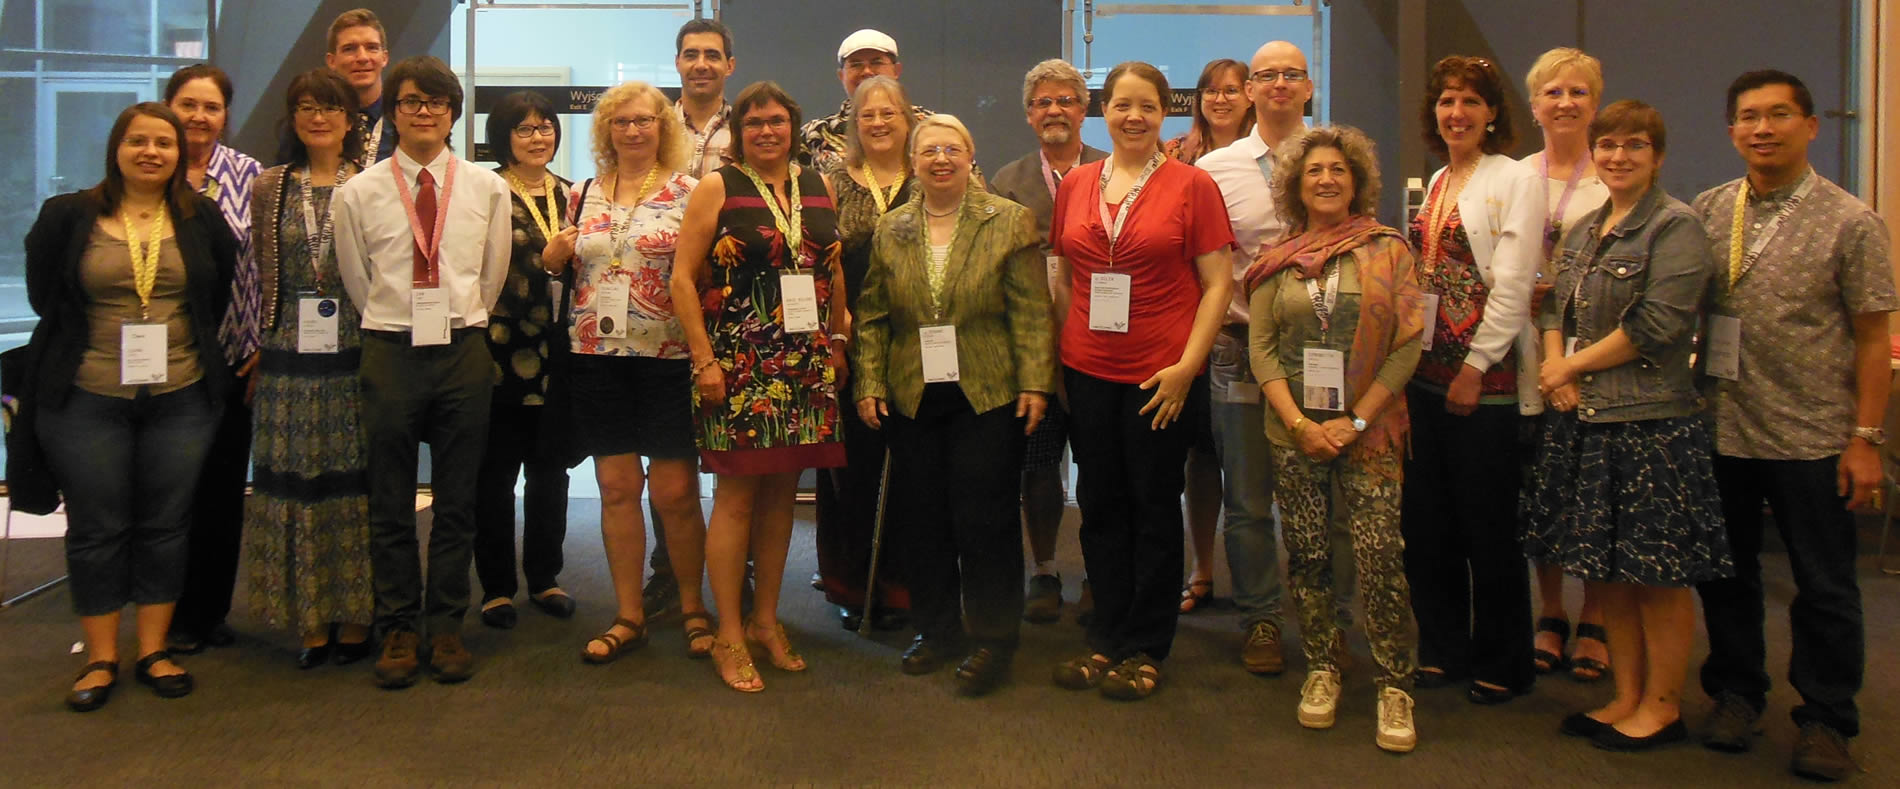 Education Committee at IPS 2016 in Warsaw